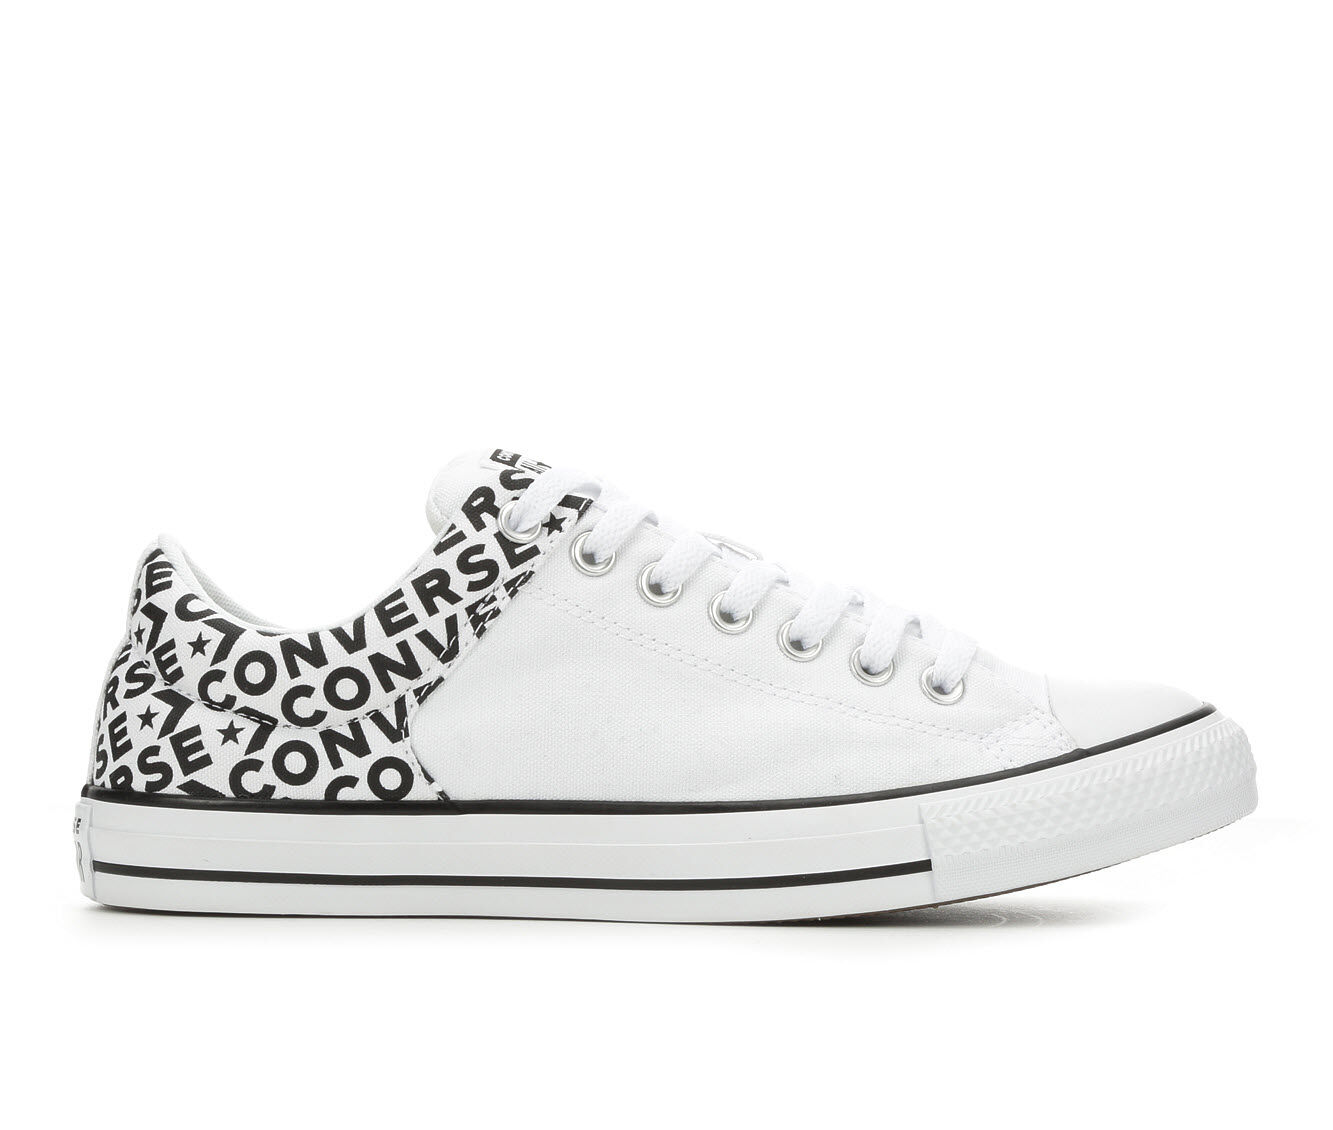 Men's Converse High Street Ox Wordmark 2.0 Sneakers White/Blk/White